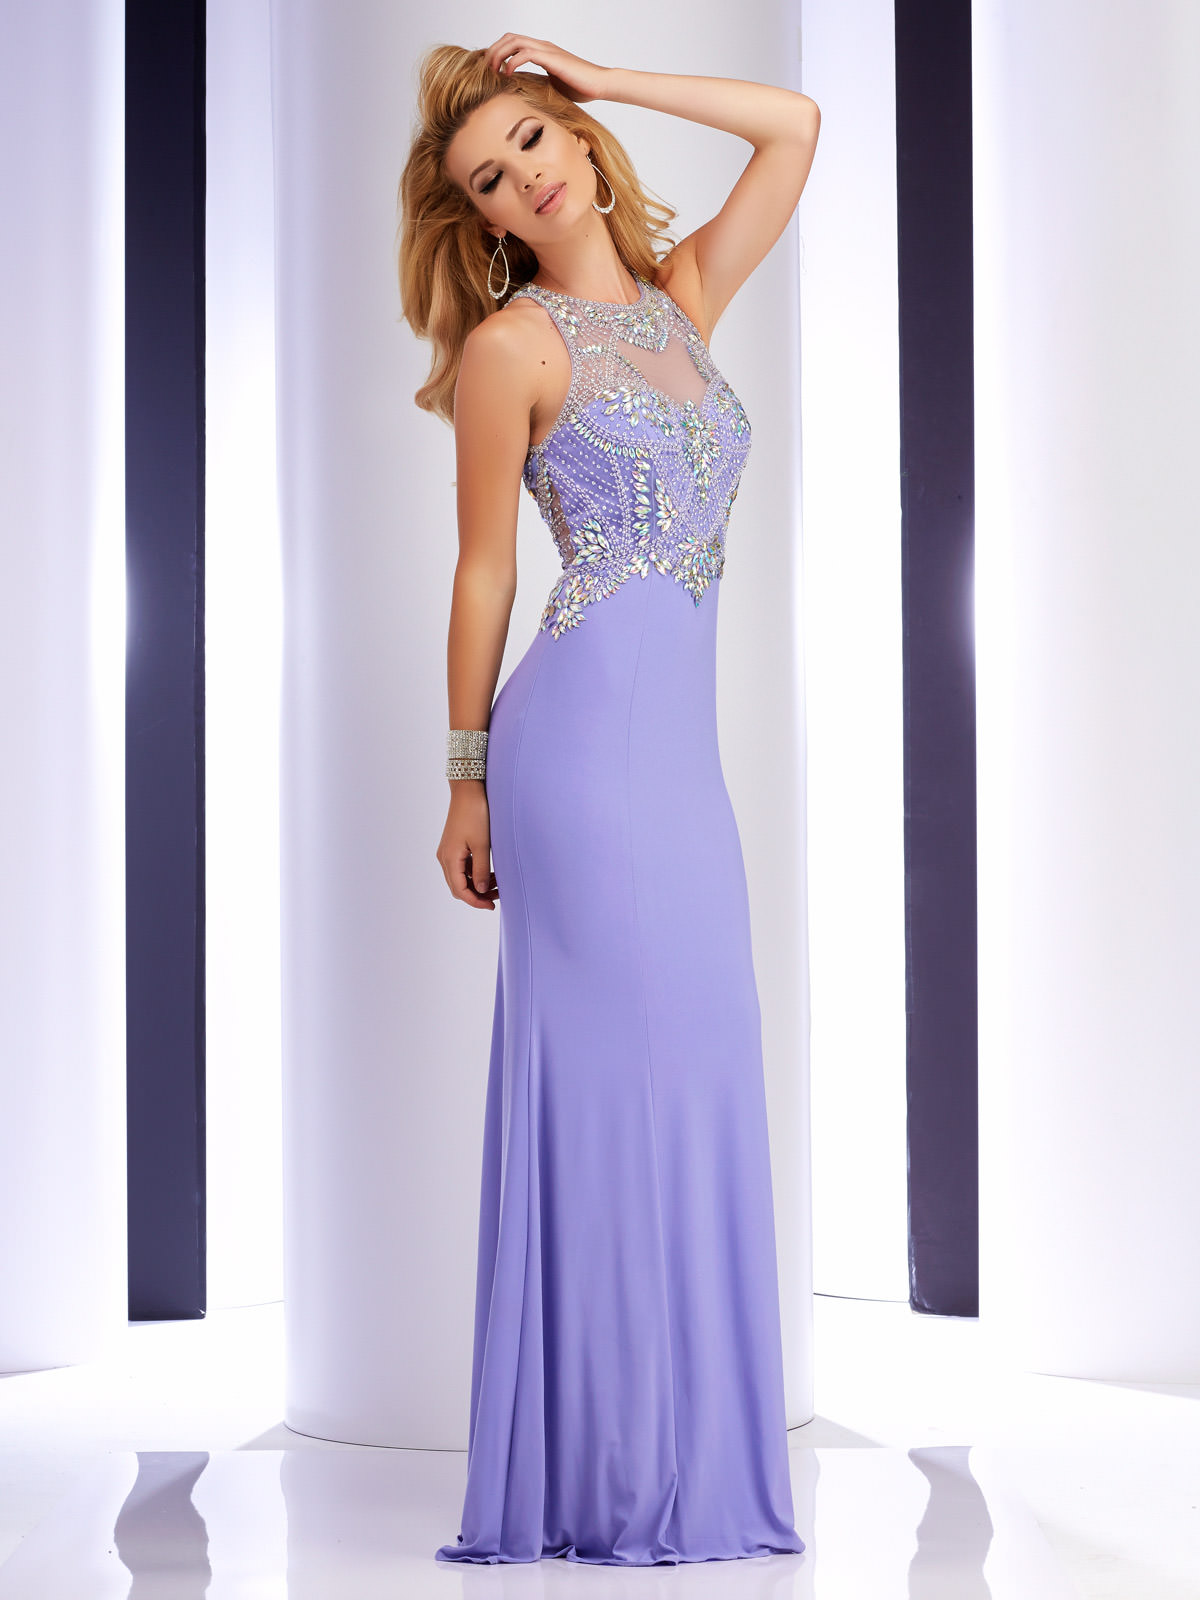 Clarisse 2796 Prom Dress | Promgirl.net